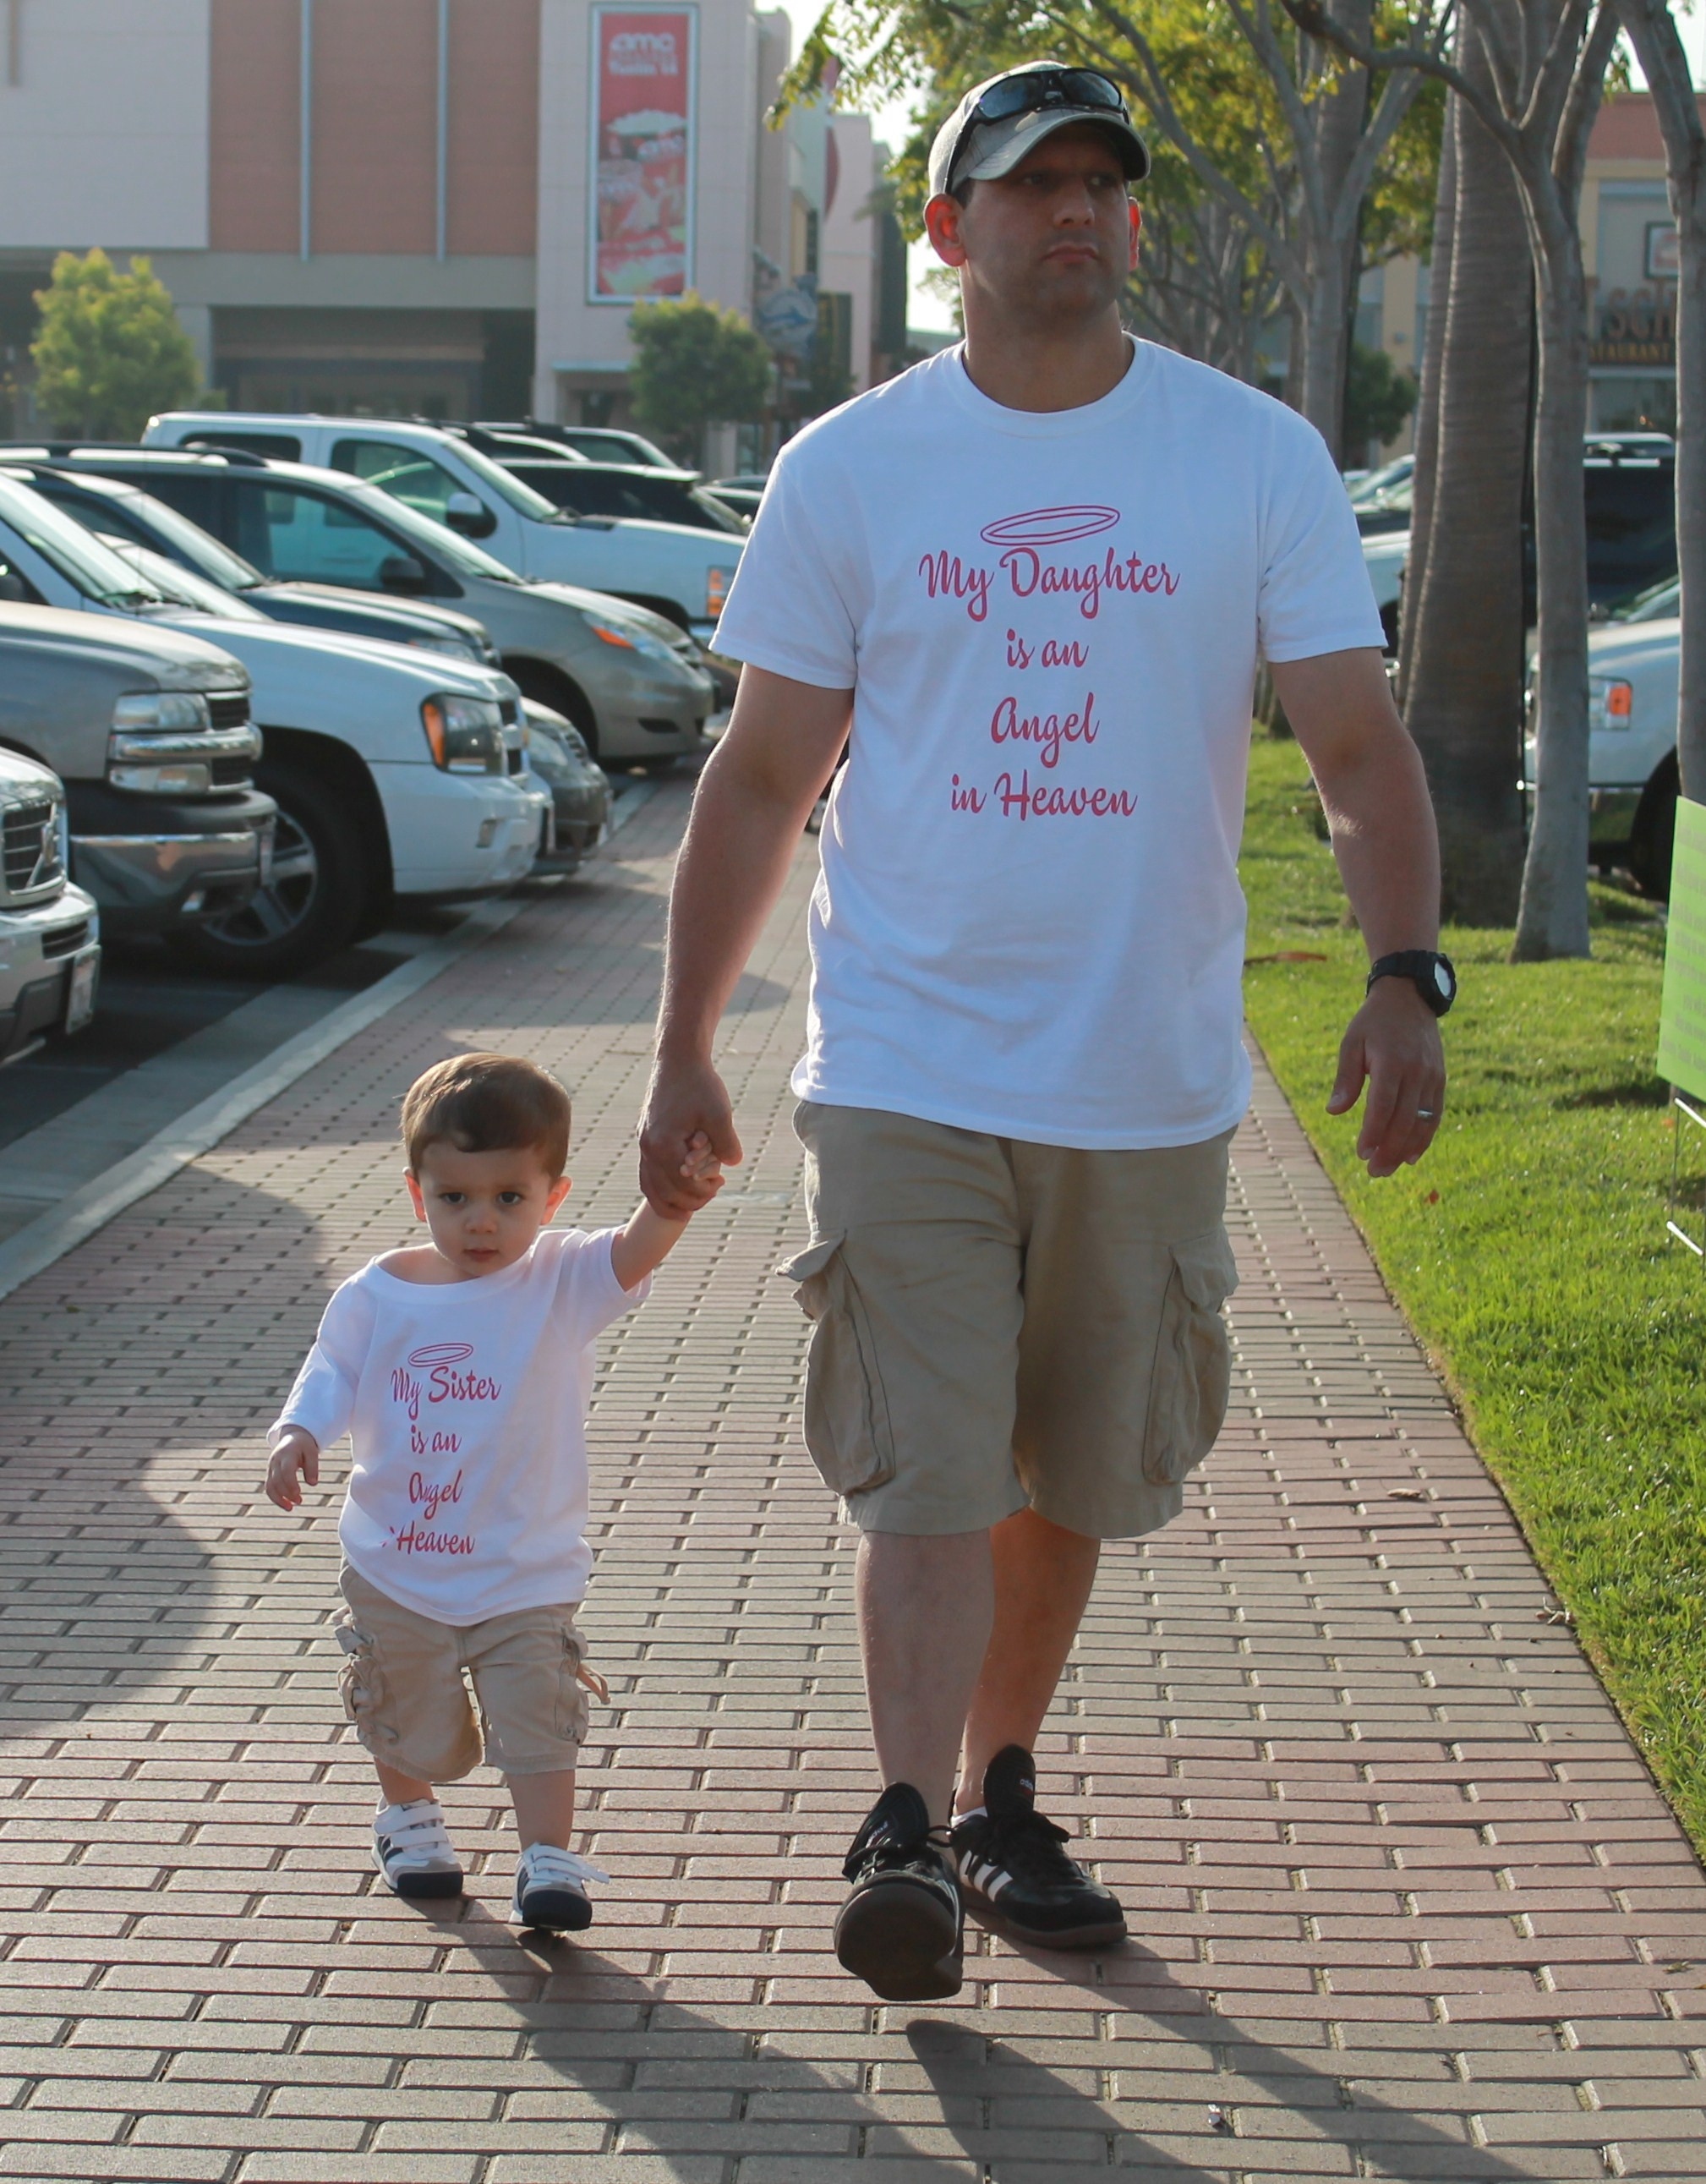 f7abec24 Custom T-Shirts for Walking For Our Daughter/Sister... - Shirt ...